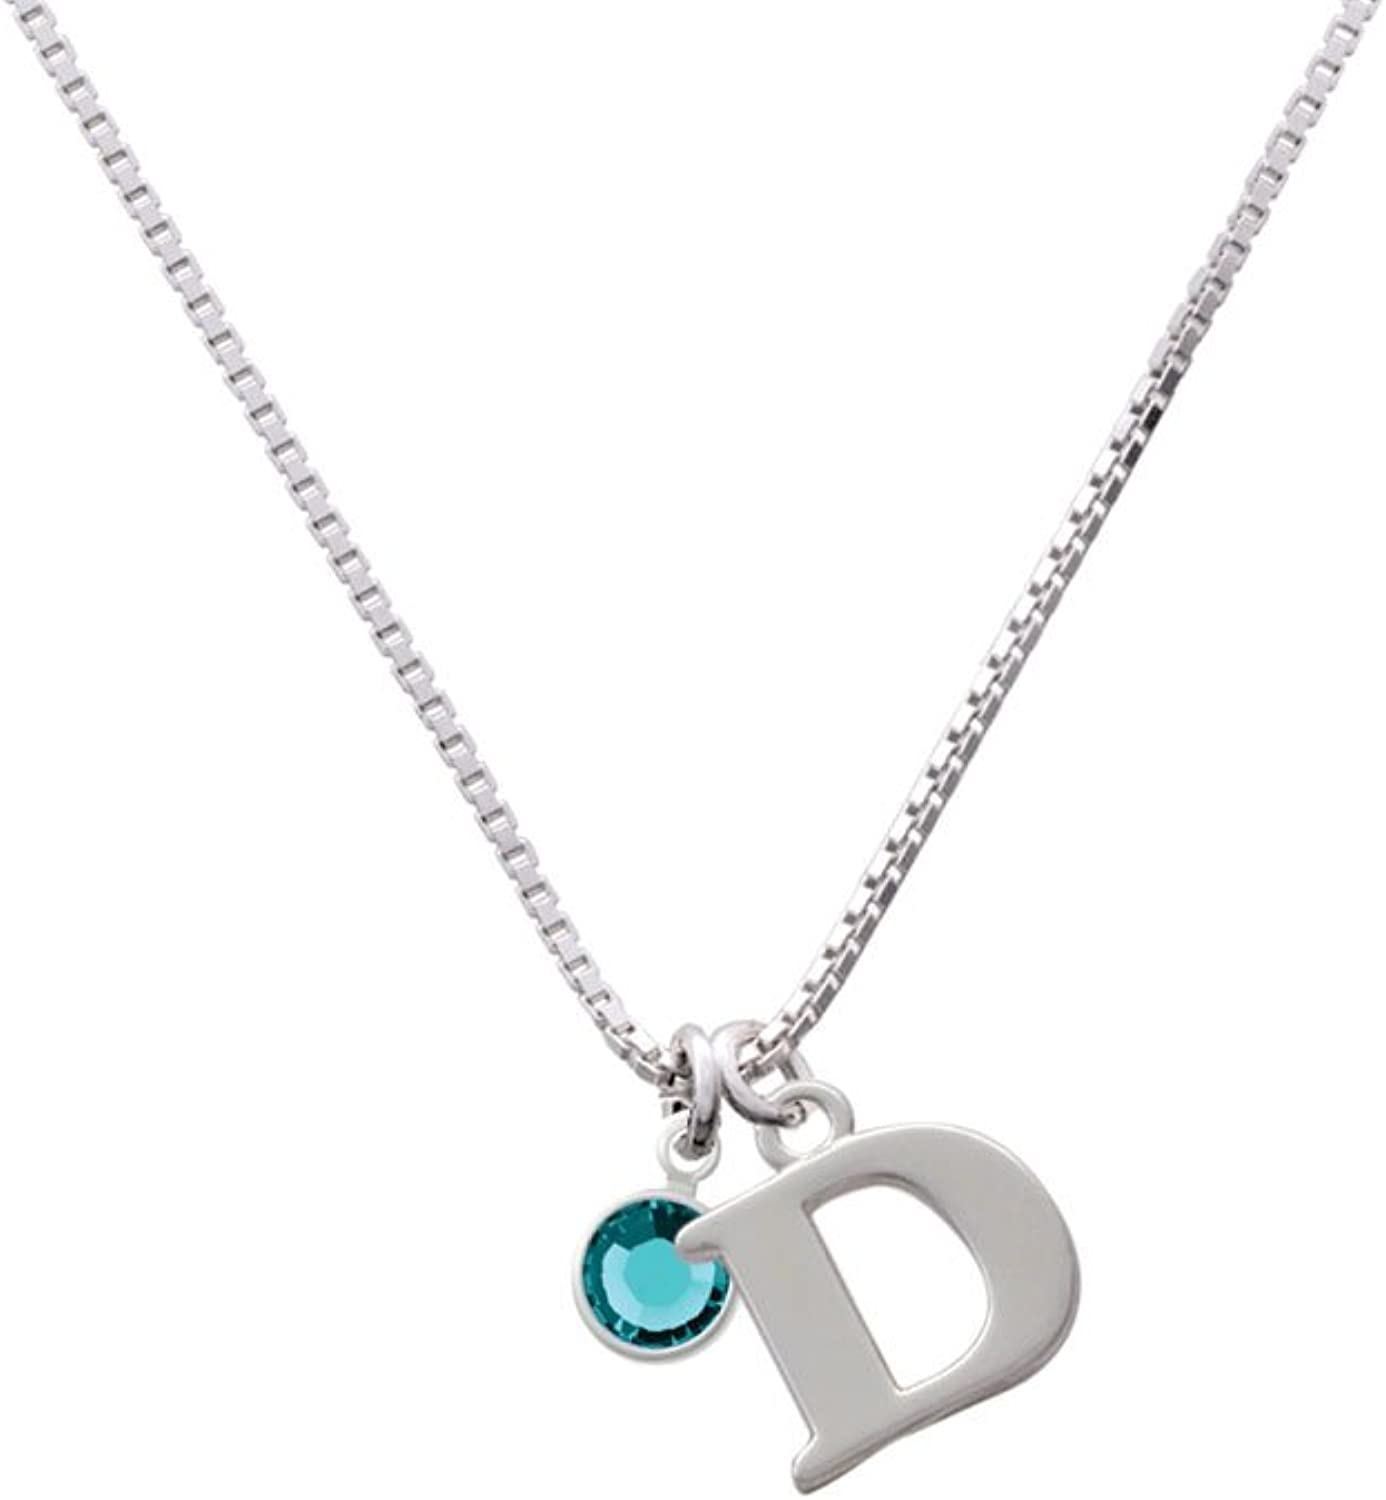 Delight Jewelry Crystal Teal Channel Drop Capital Initial Necklace